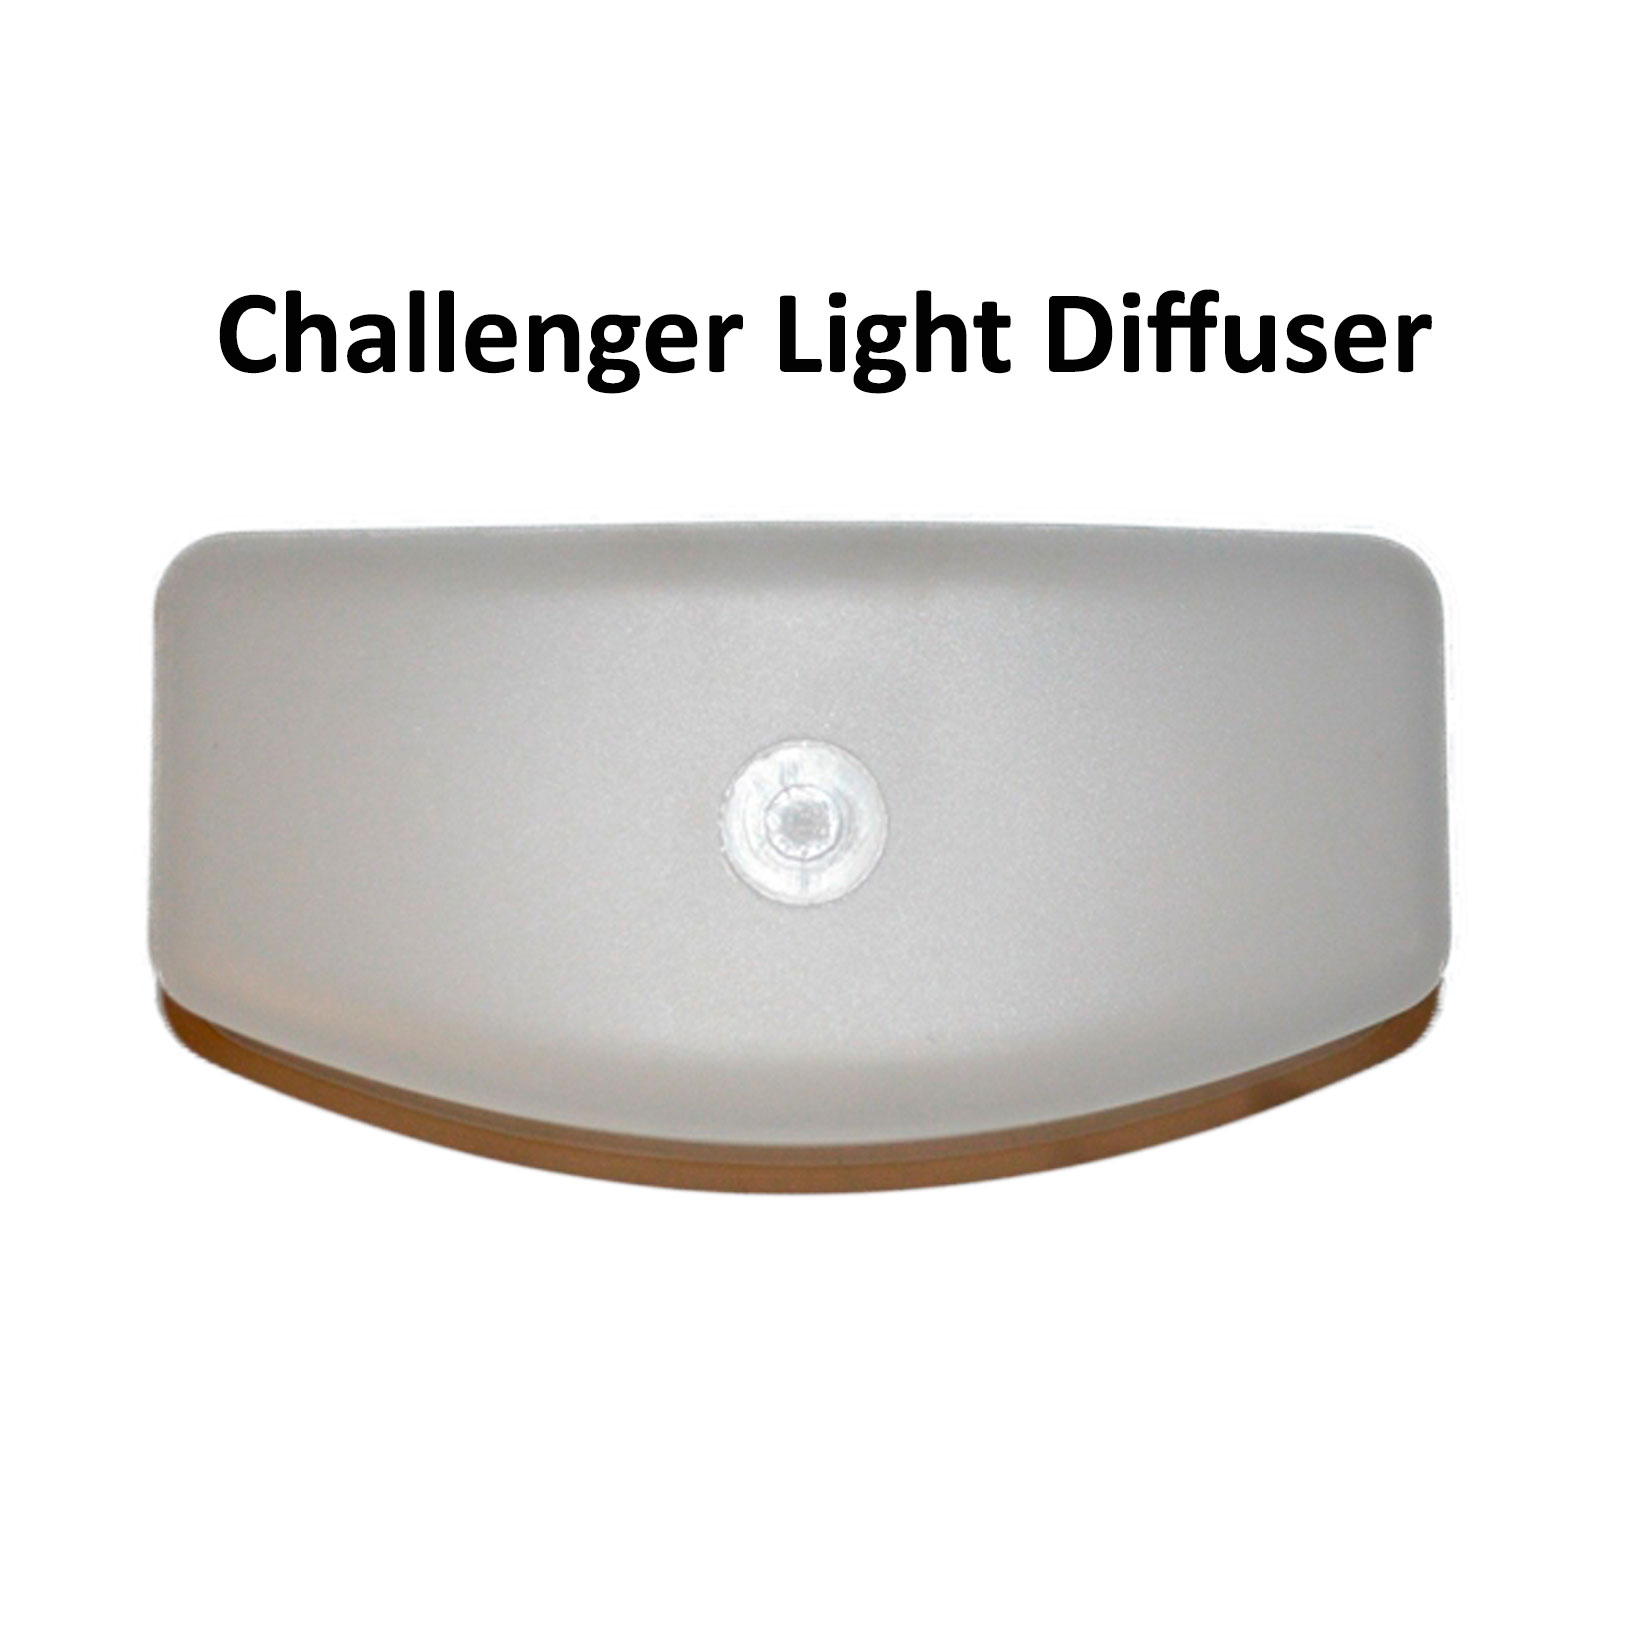 Challenger Light Diffuser